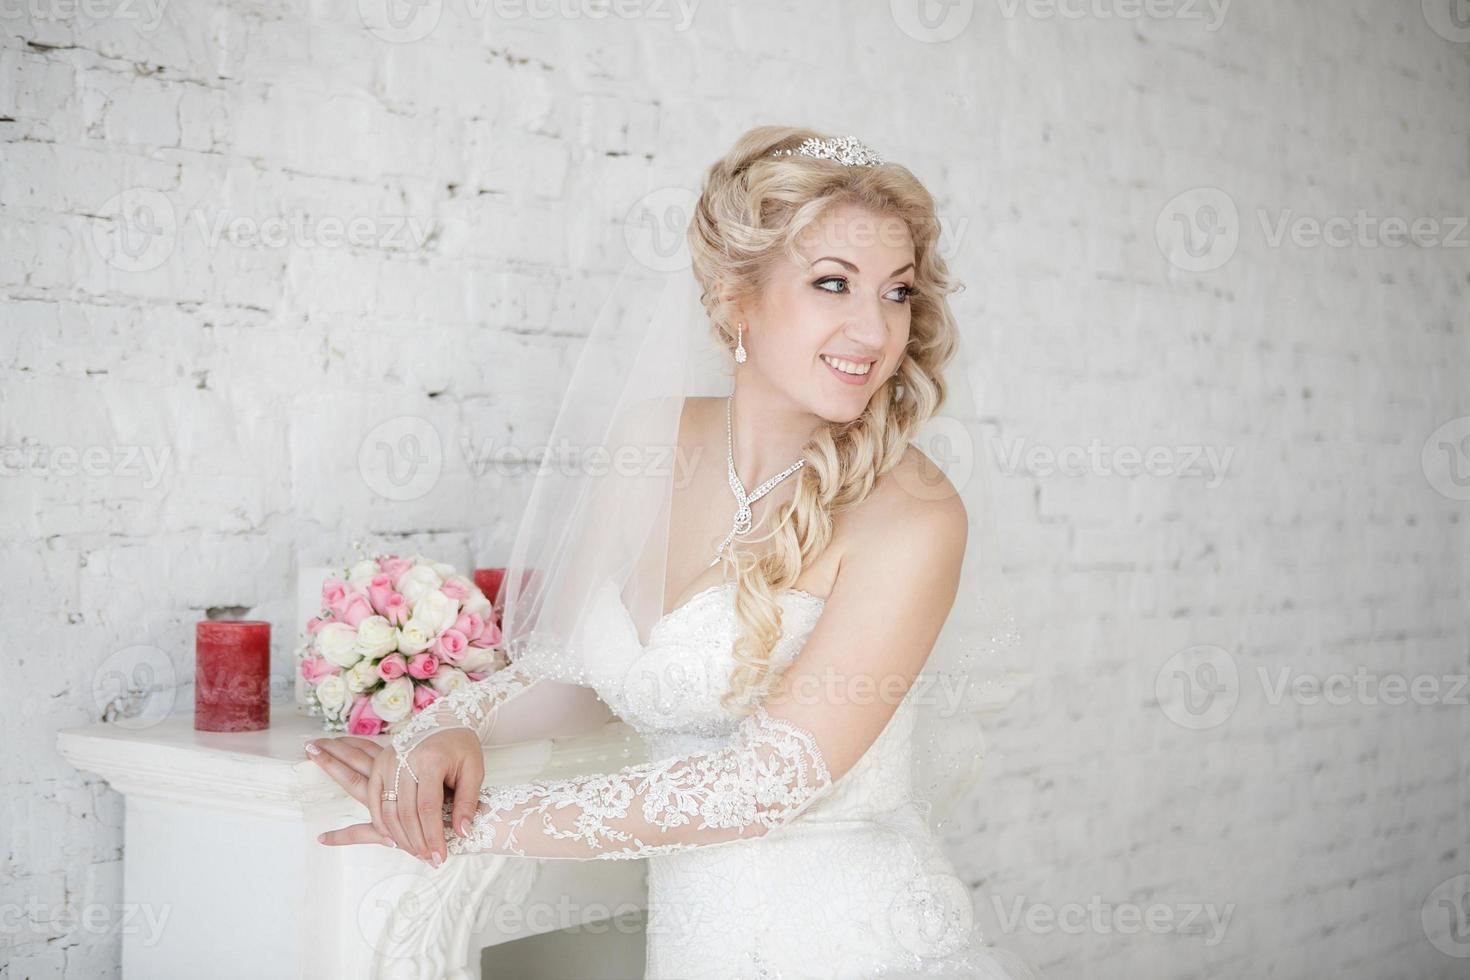 beautiful bride with wedding bouquet standing near fireplace photo